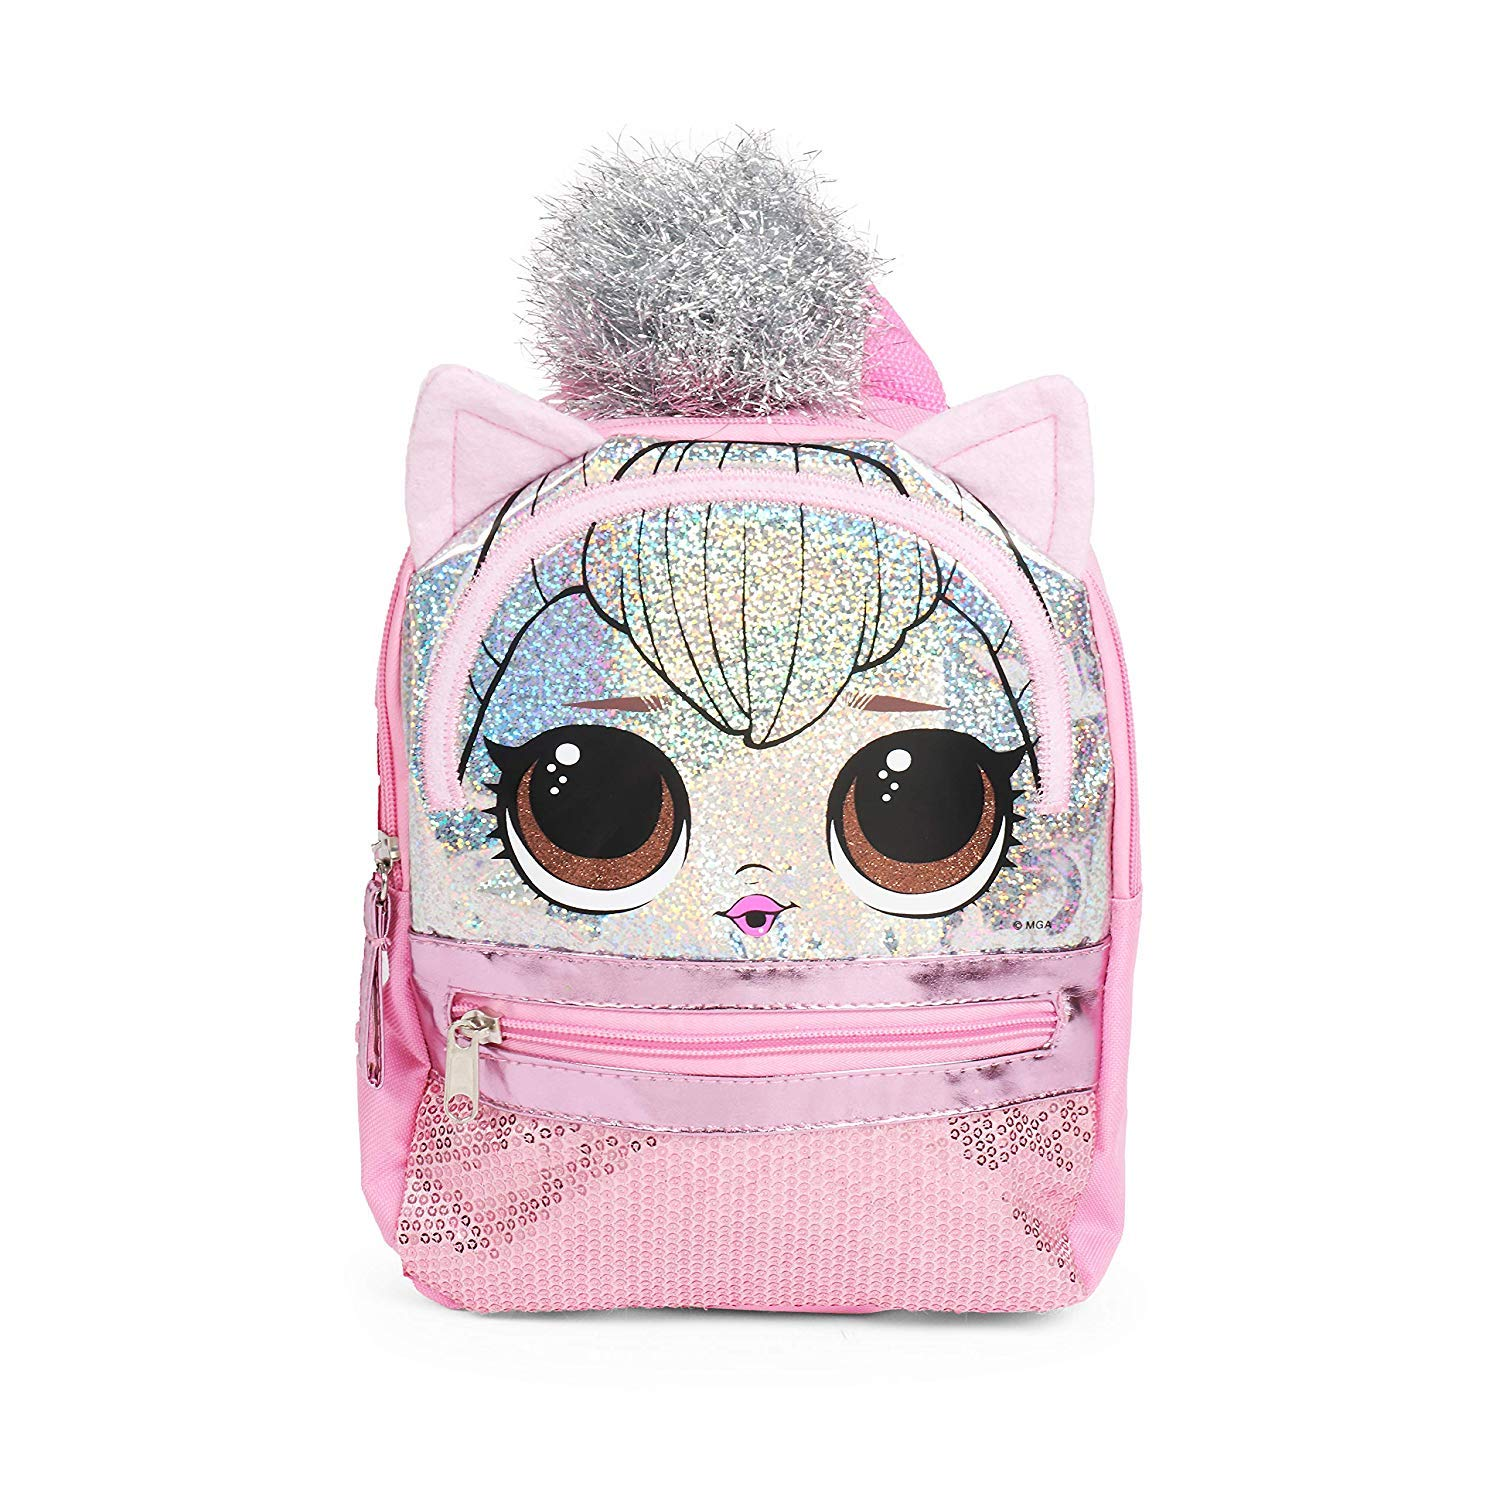 L.O.L. 서프라이즈 '핑크' 미니 백팩 L.O.L. Surprise! Pink Mini Backpack